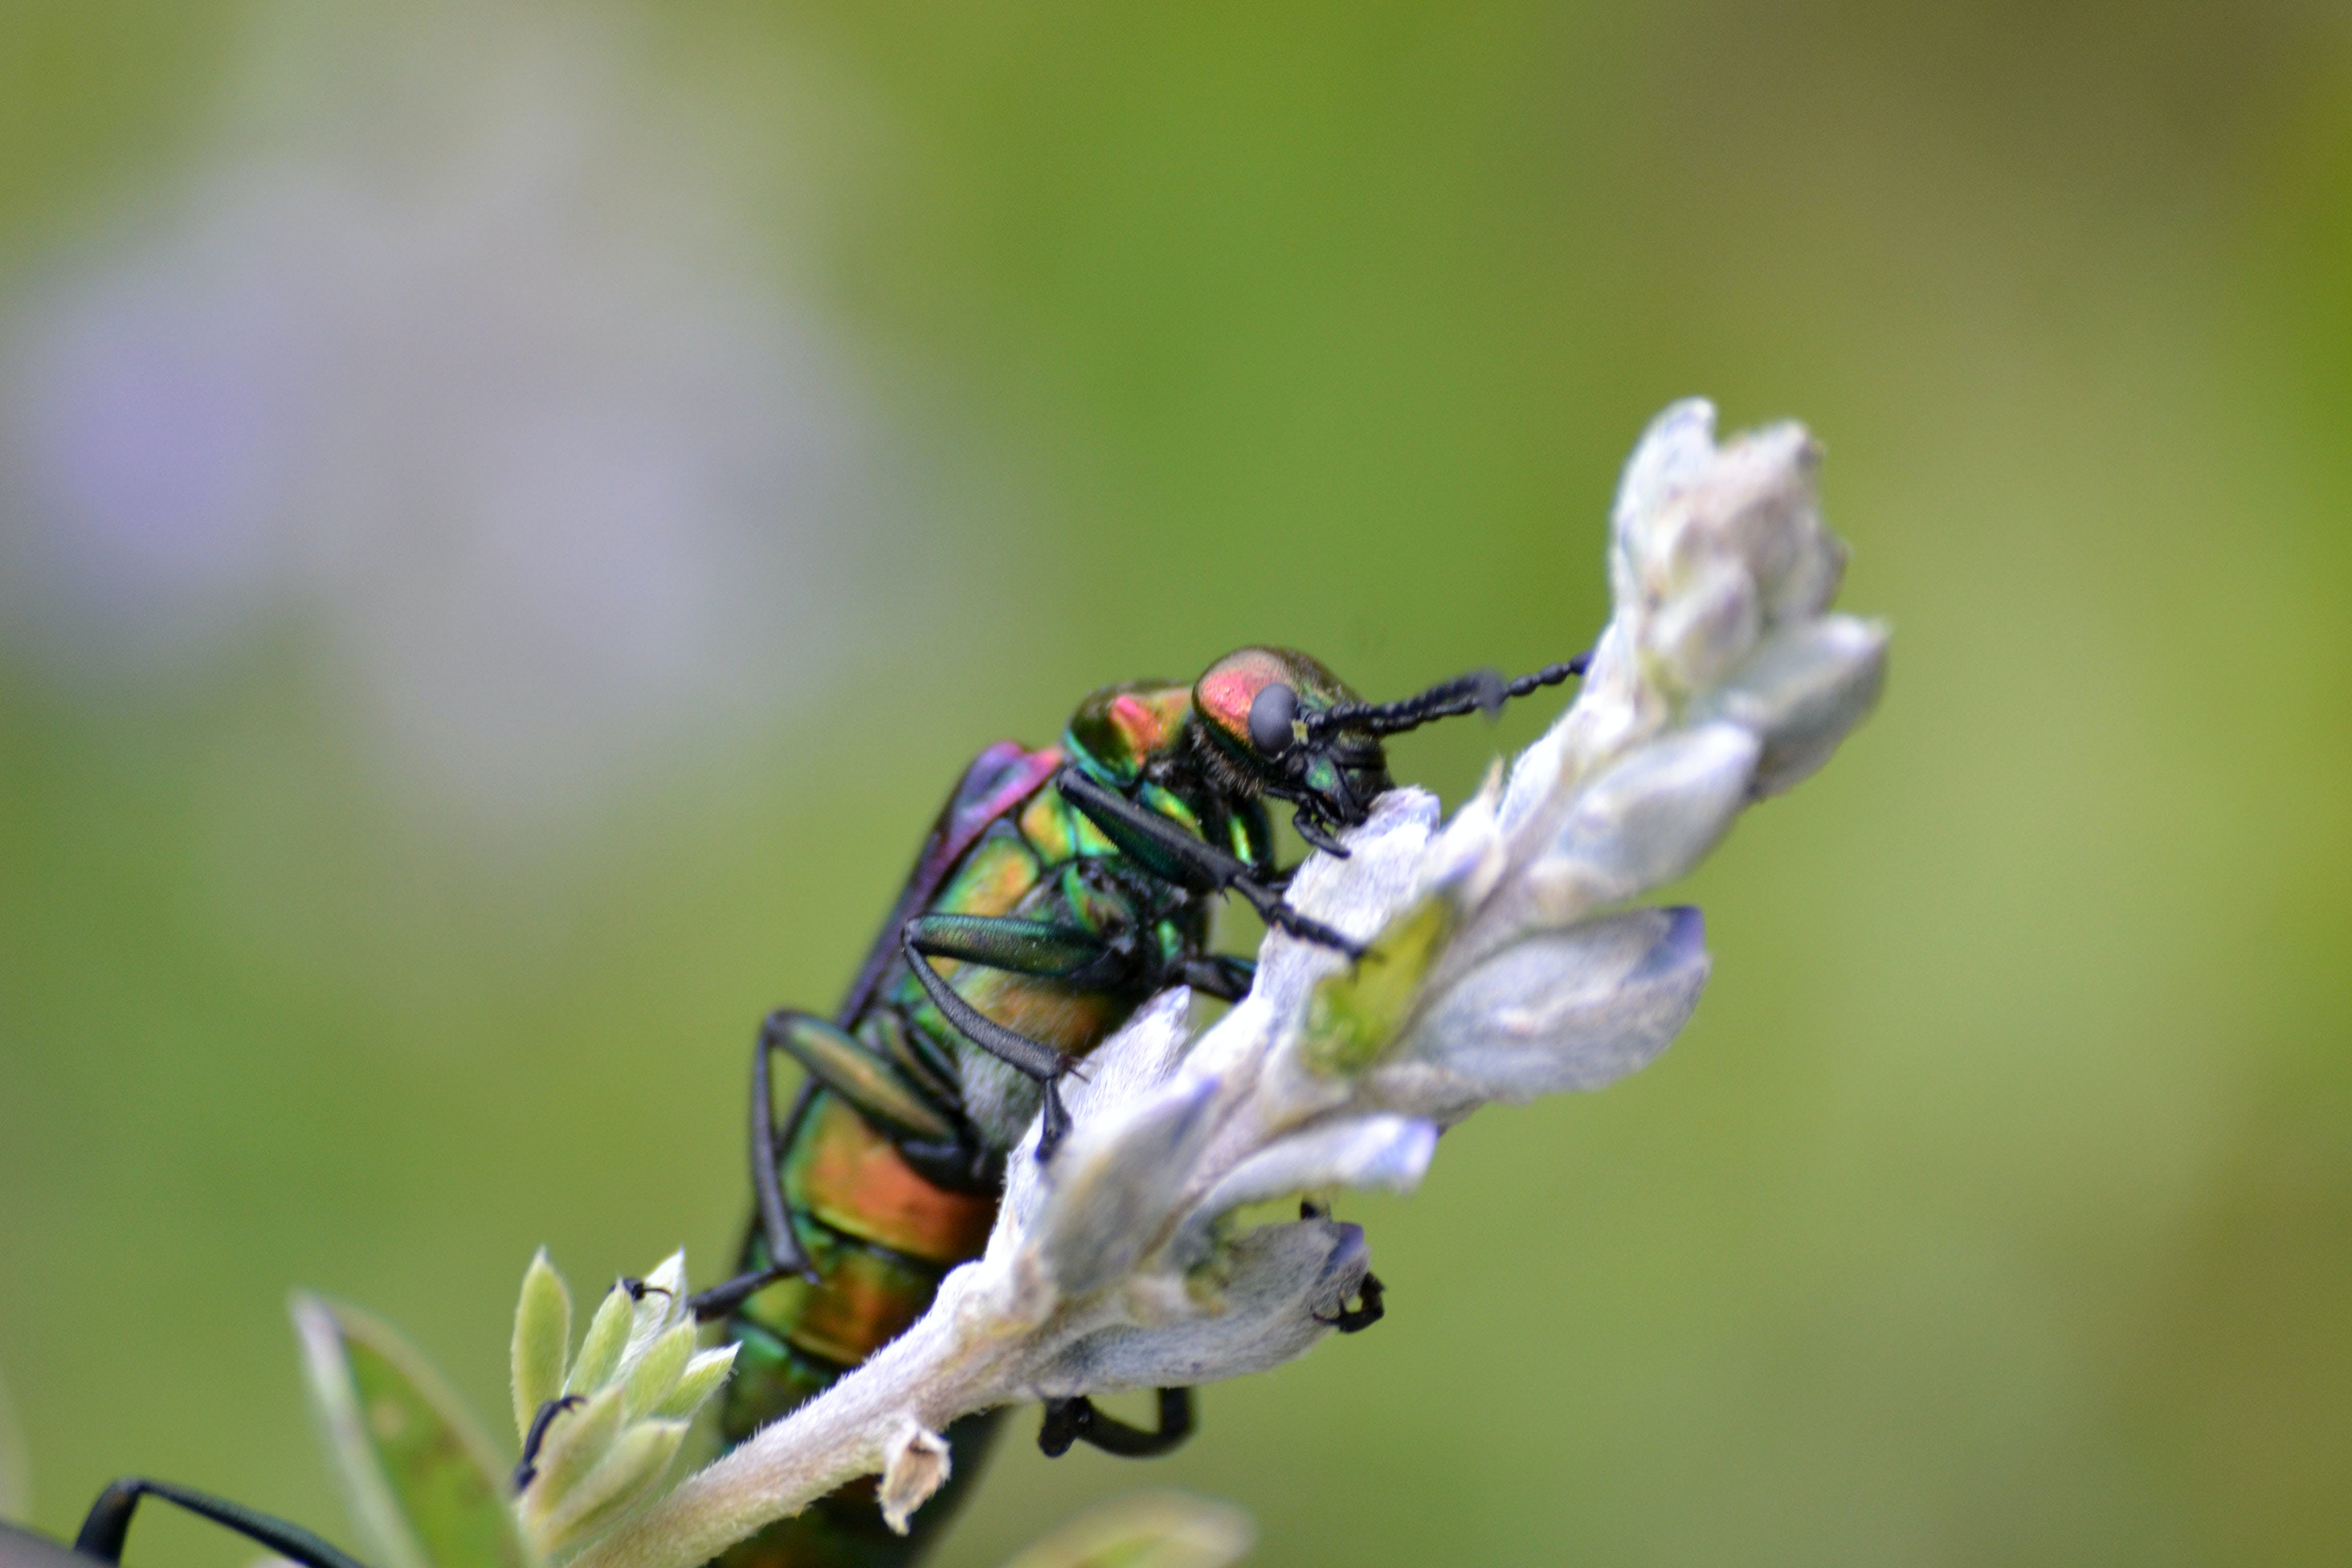 Free stock photo of colorful, insects, mother nature, purple flowers